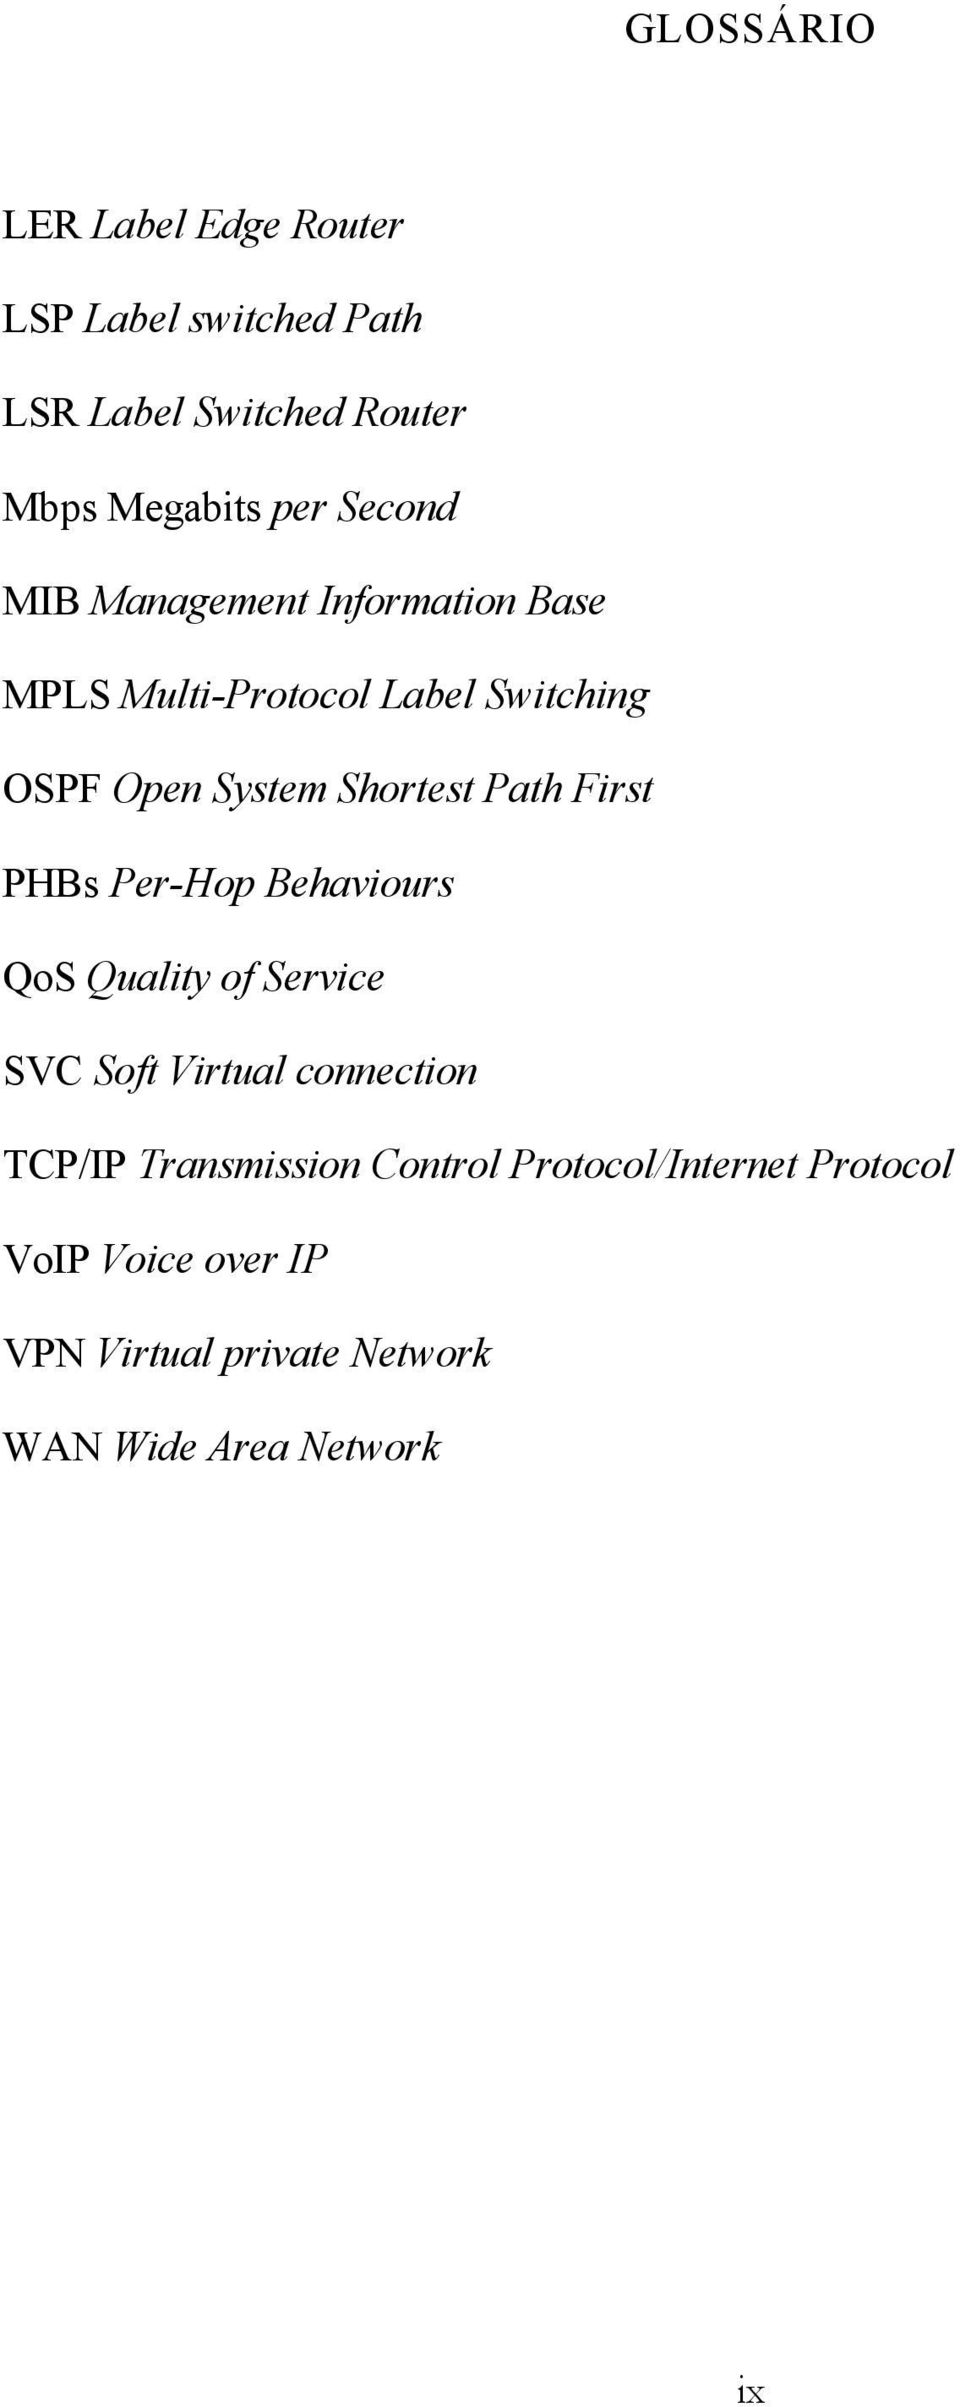 Path First PHBs Per-Hop Behaviours QoS Quality of Service SVC Soft Virtual connection TCP/IP